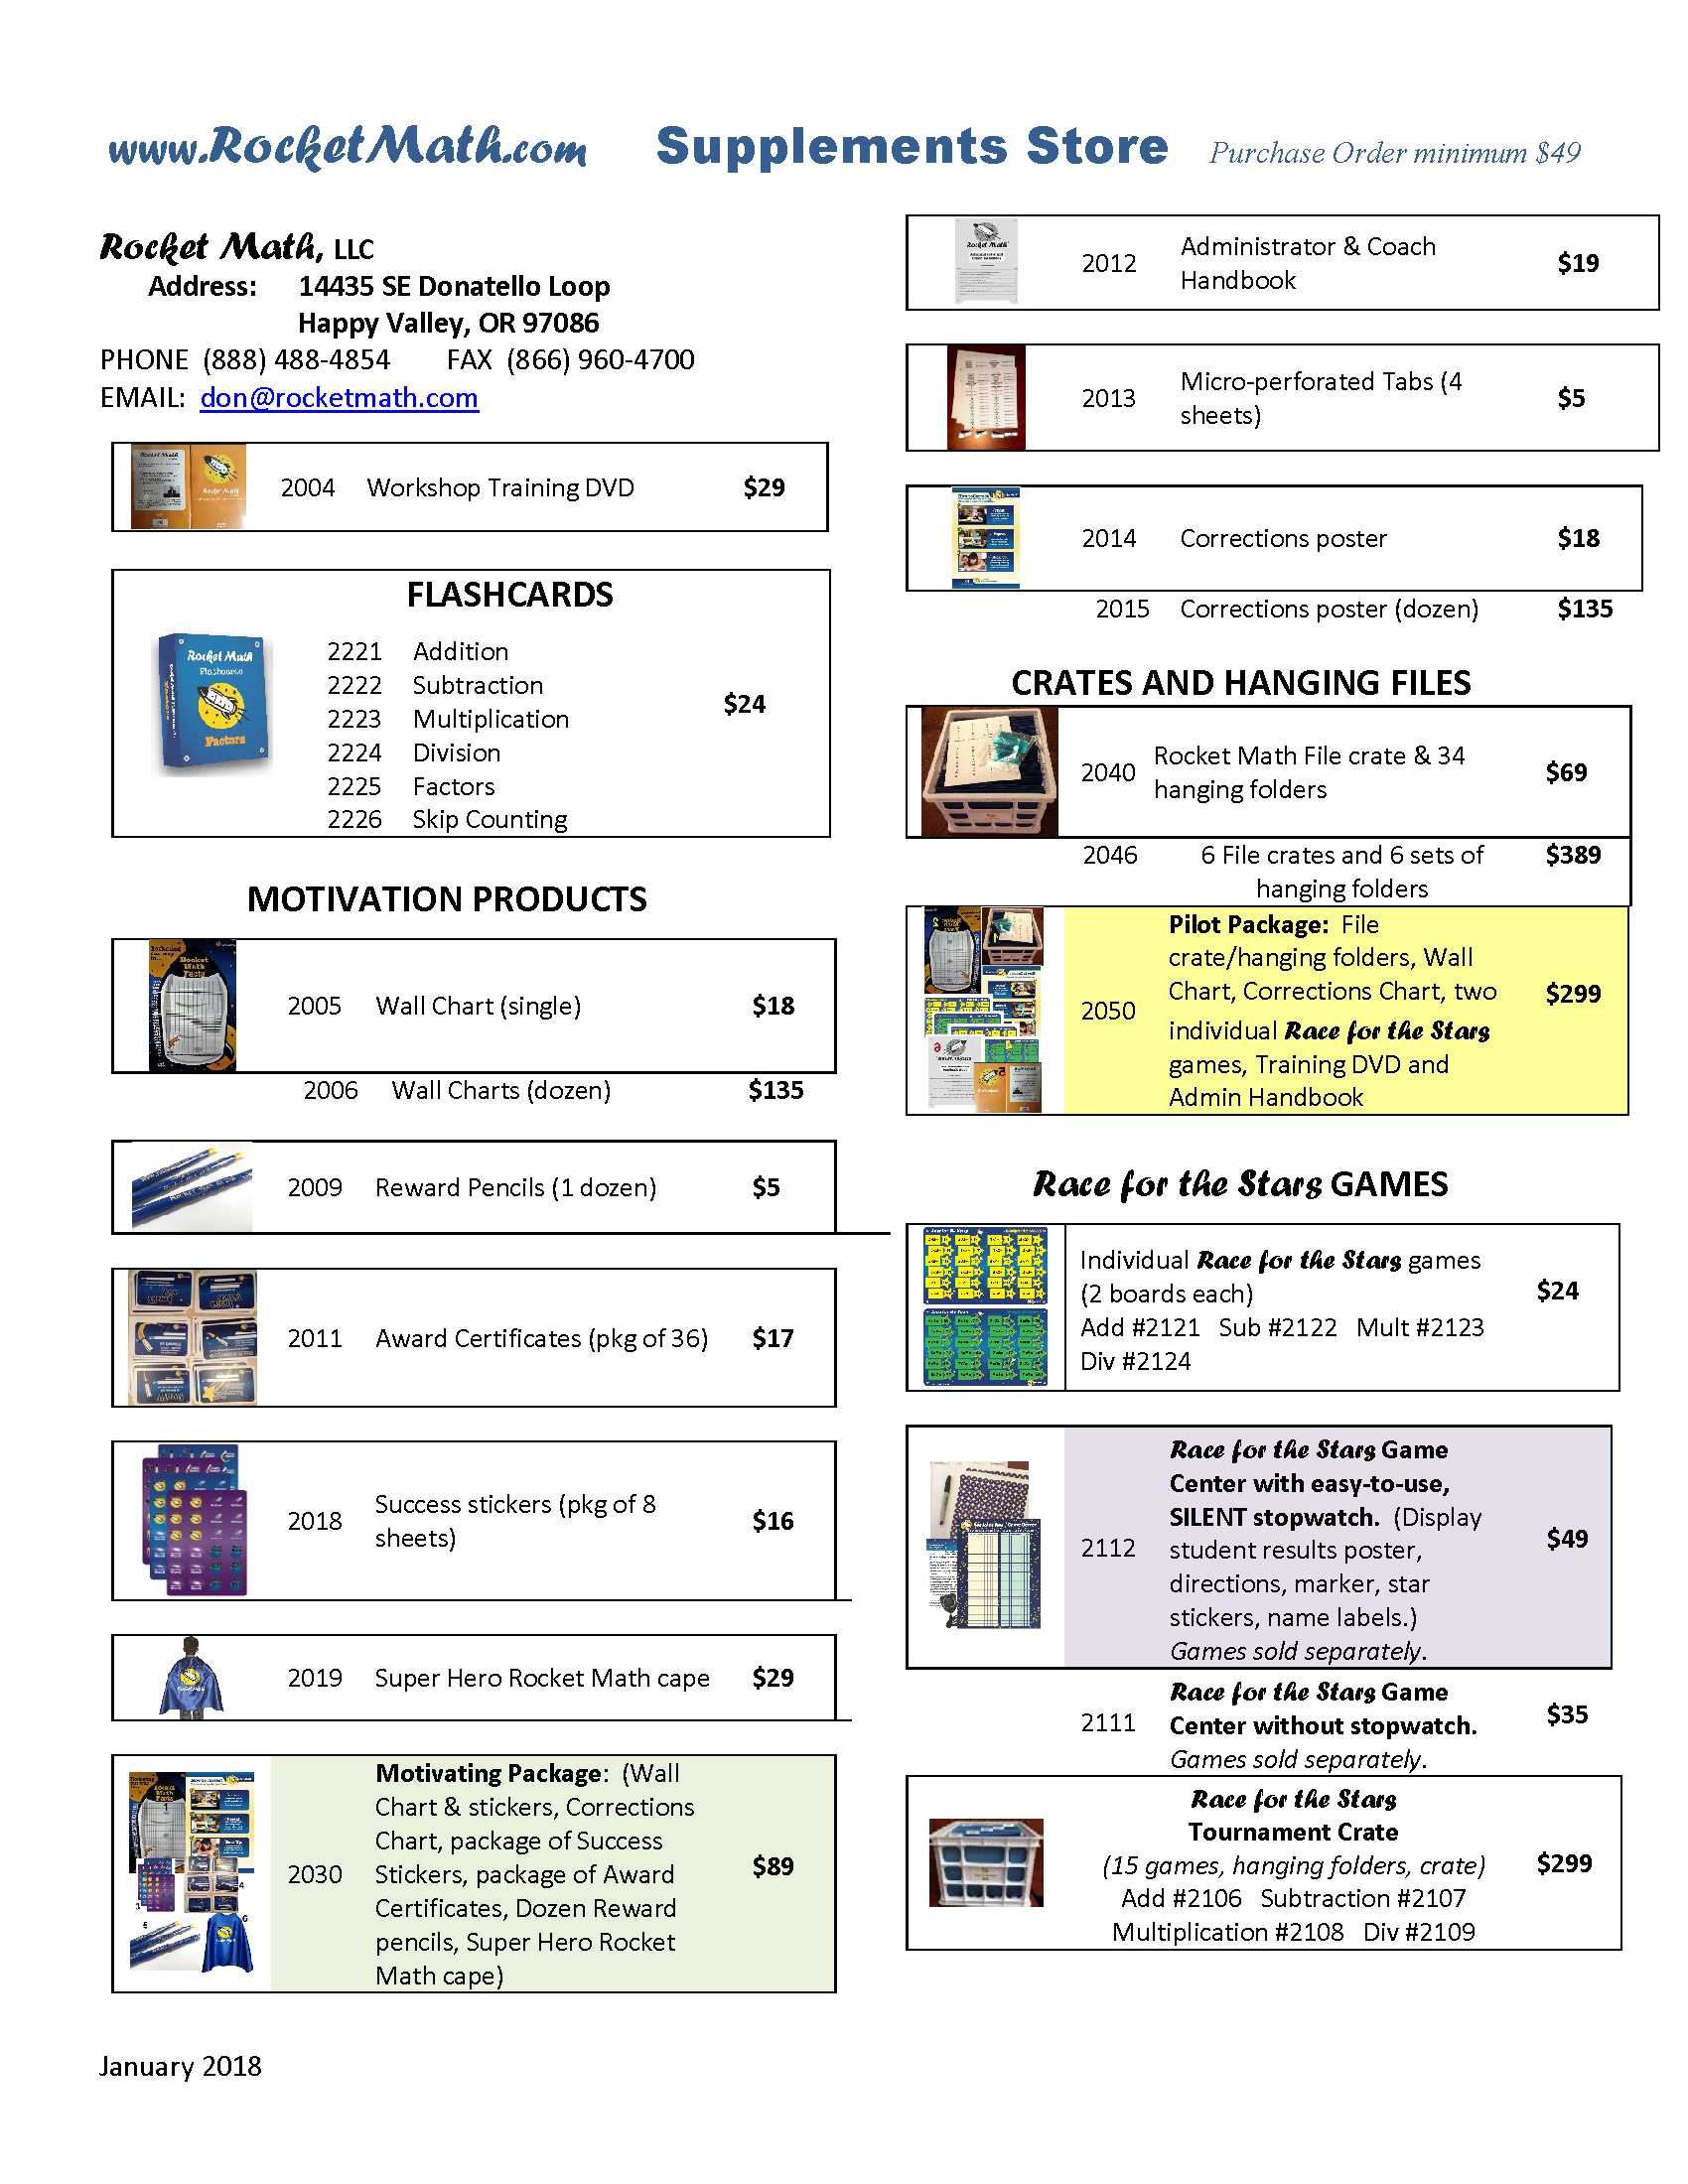 A preview of the supplements catalog with a download link.